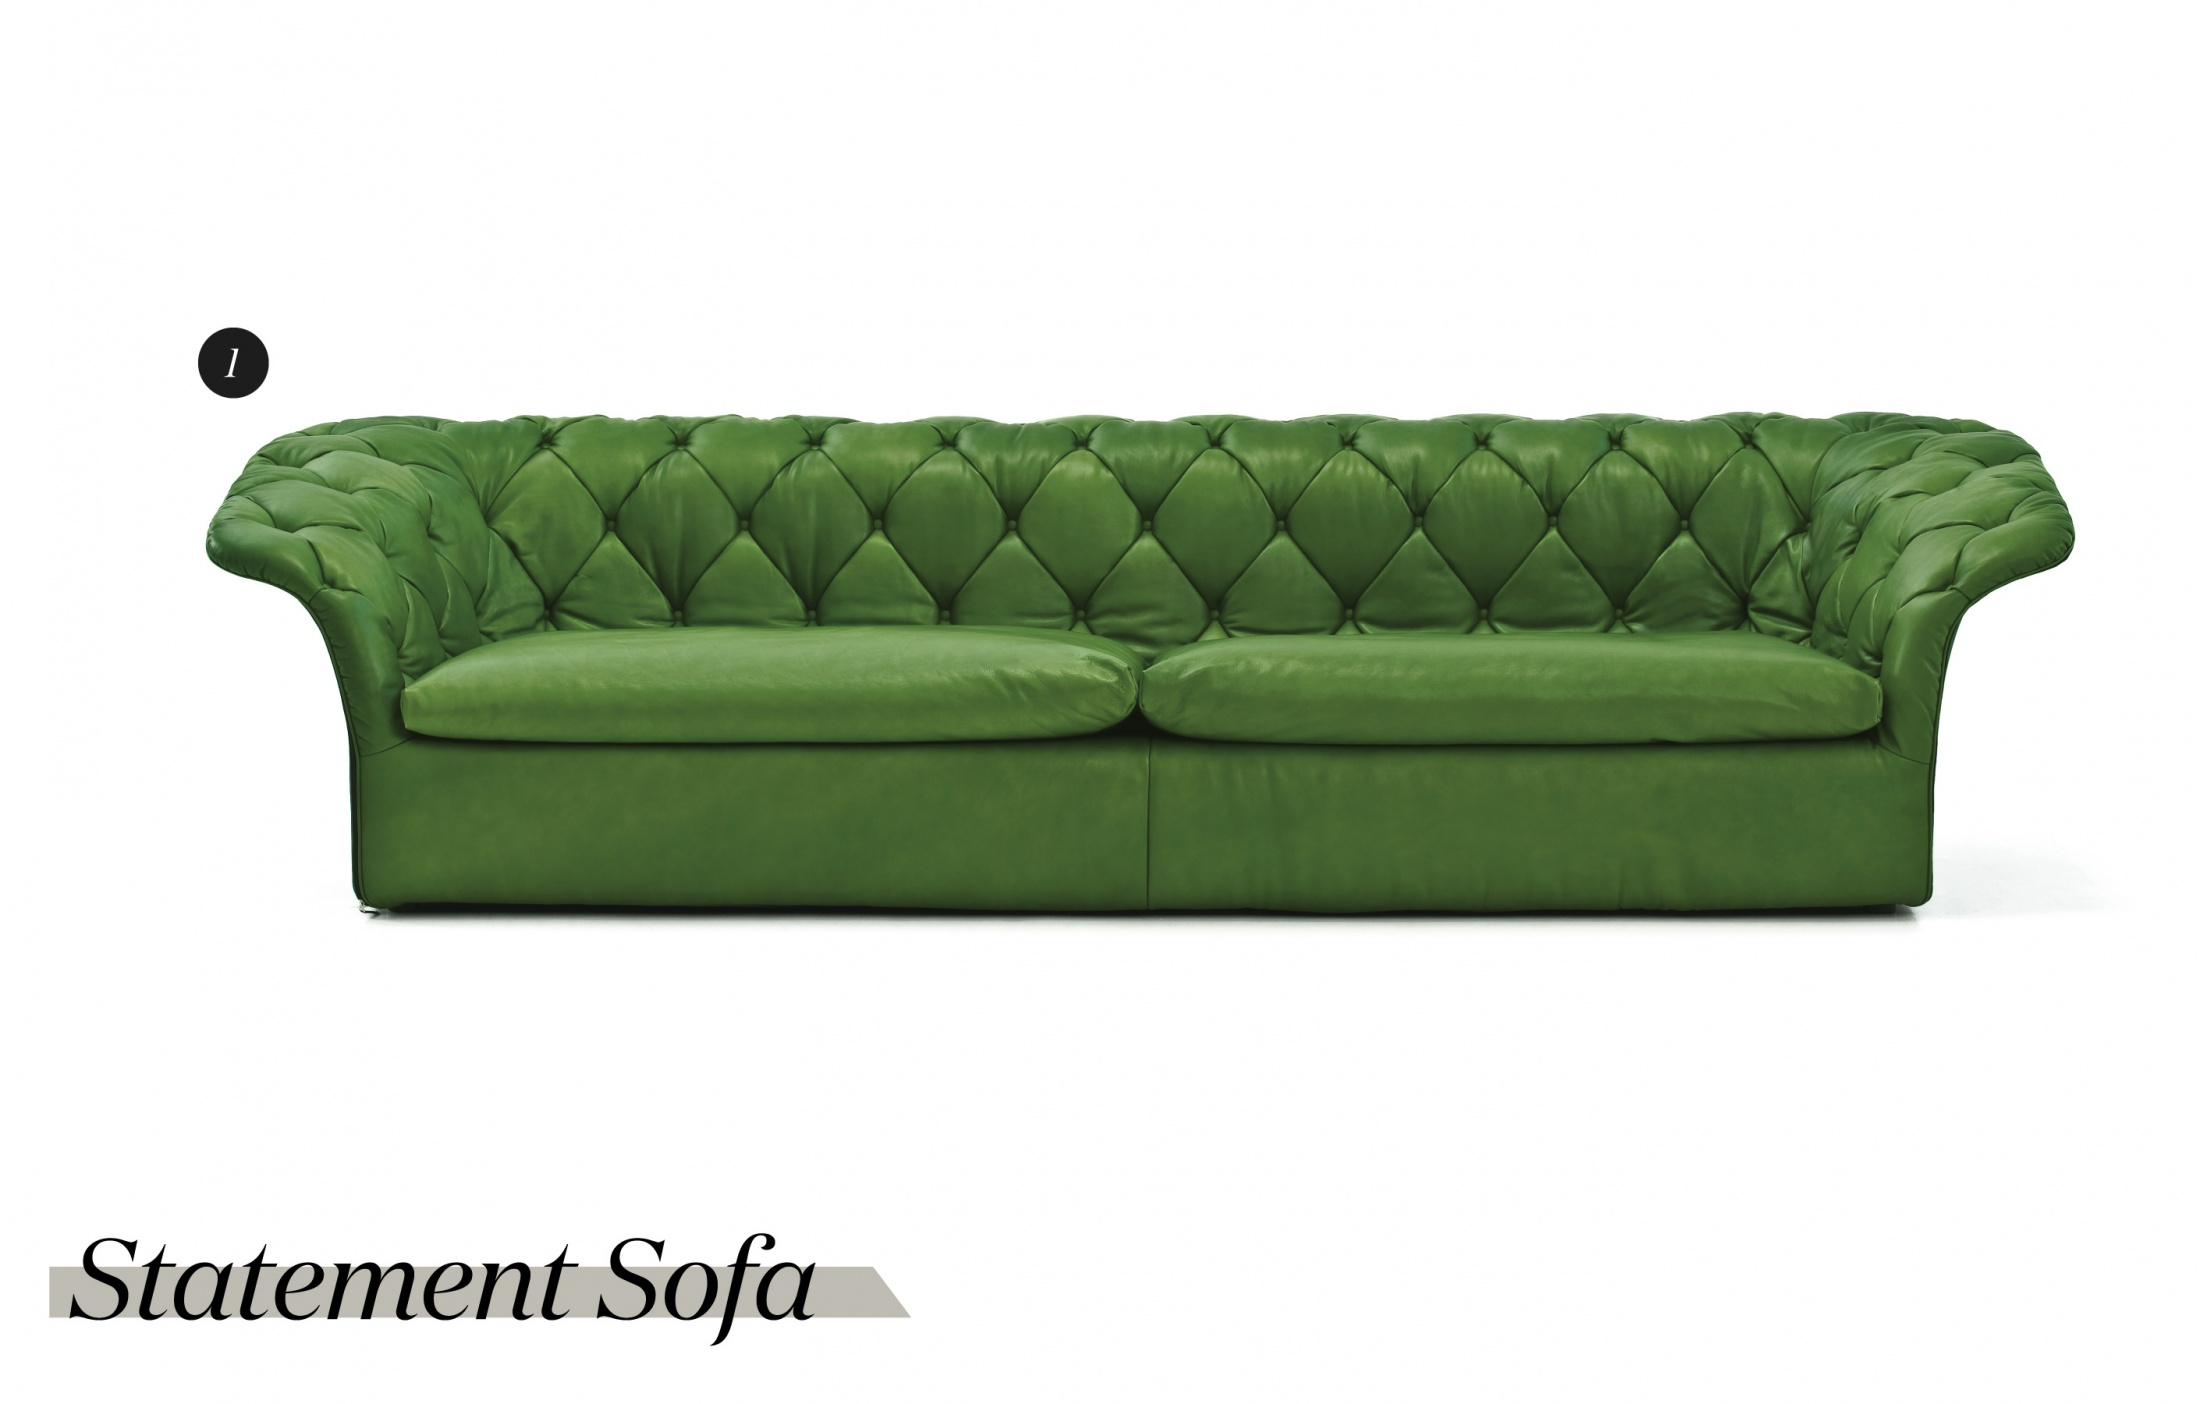 Best Sofas Australia The Best Sofa In The World